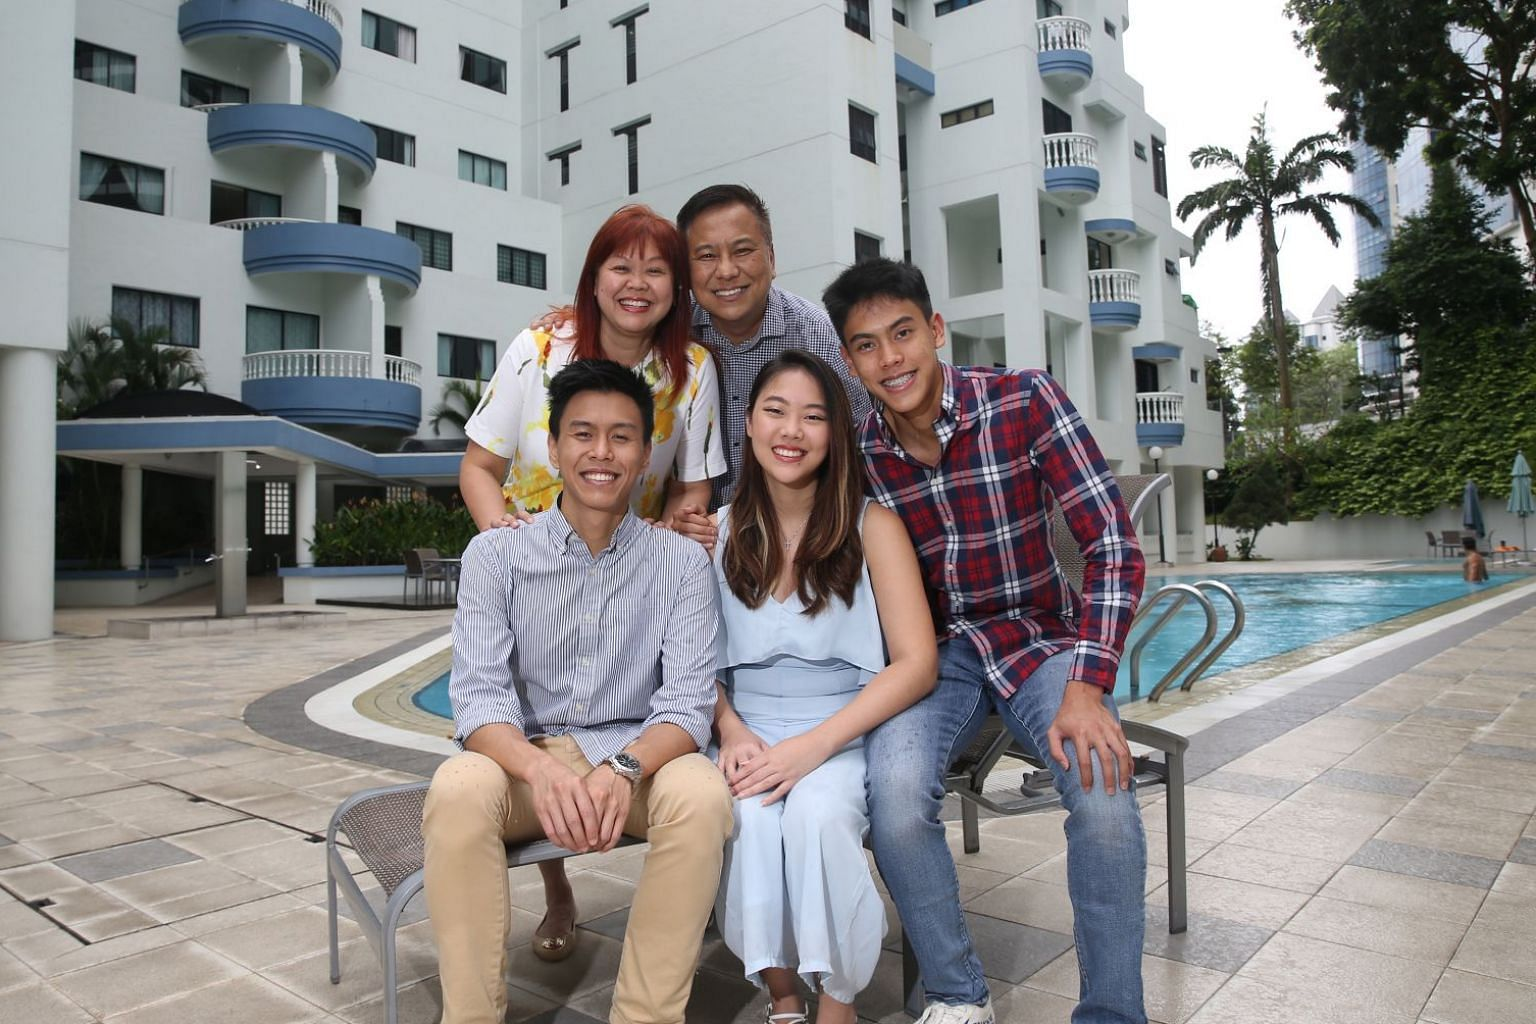 Financial adviser Bernard Lim with his wife Caron and three children – (from left) Isaac, Rachel and Joshua. Much of Mr Lim's time and resources are spent on his business, Wealth College. Over the next five years, he plans to equip more practitioners to s